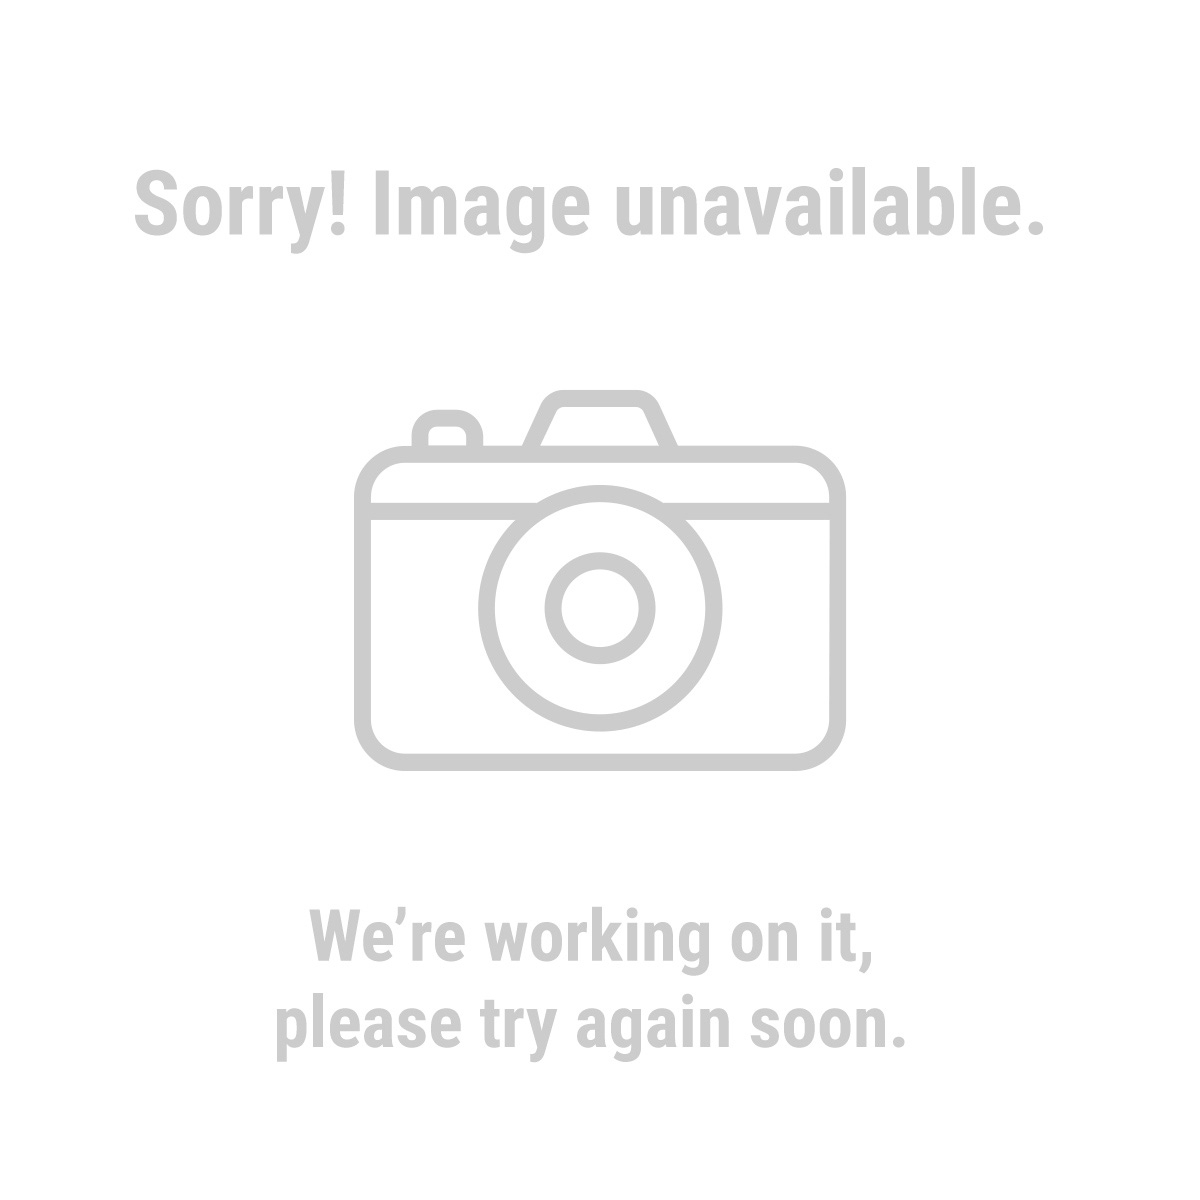 Haul-Master® 60579 3 in. x 30 ft. Heavy Duty Recovery Strap